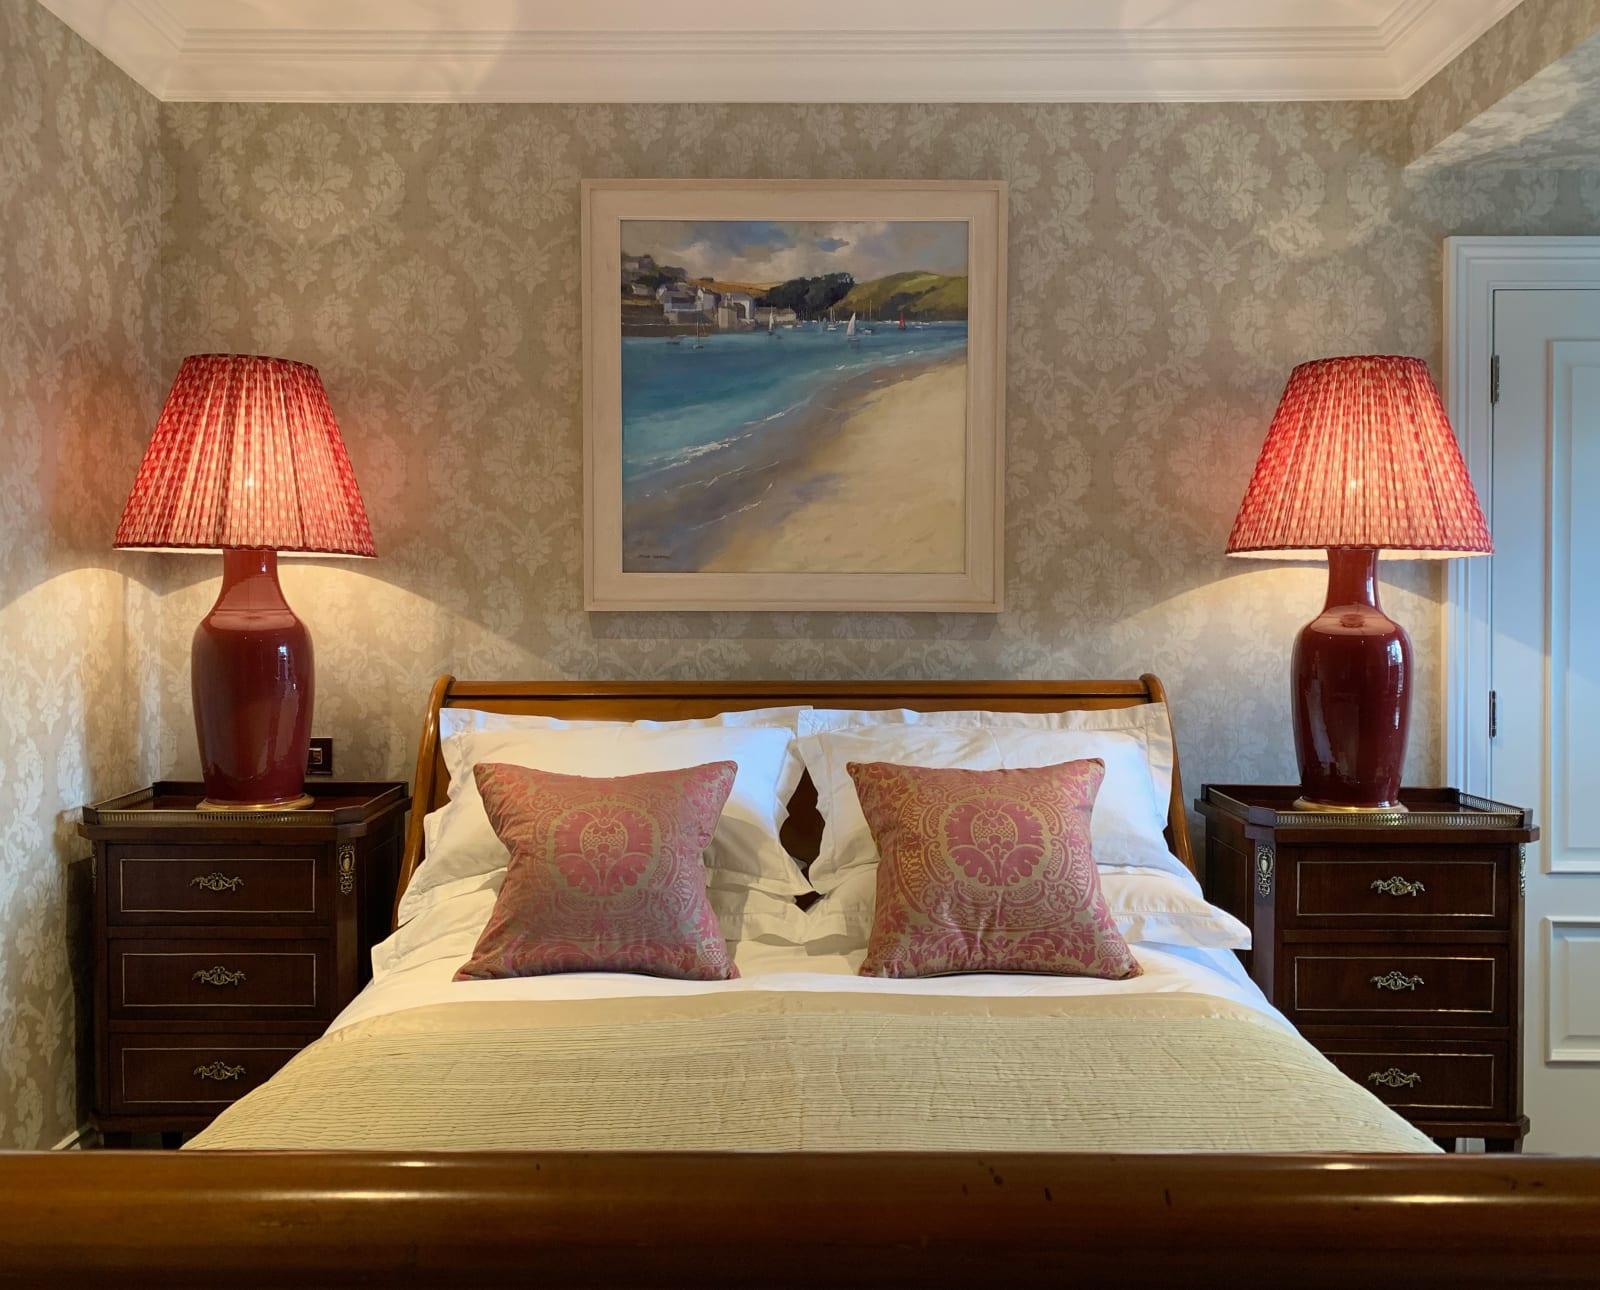 A relaxing coastal themed painting by Jane Lampard for this classic bedroom scheme